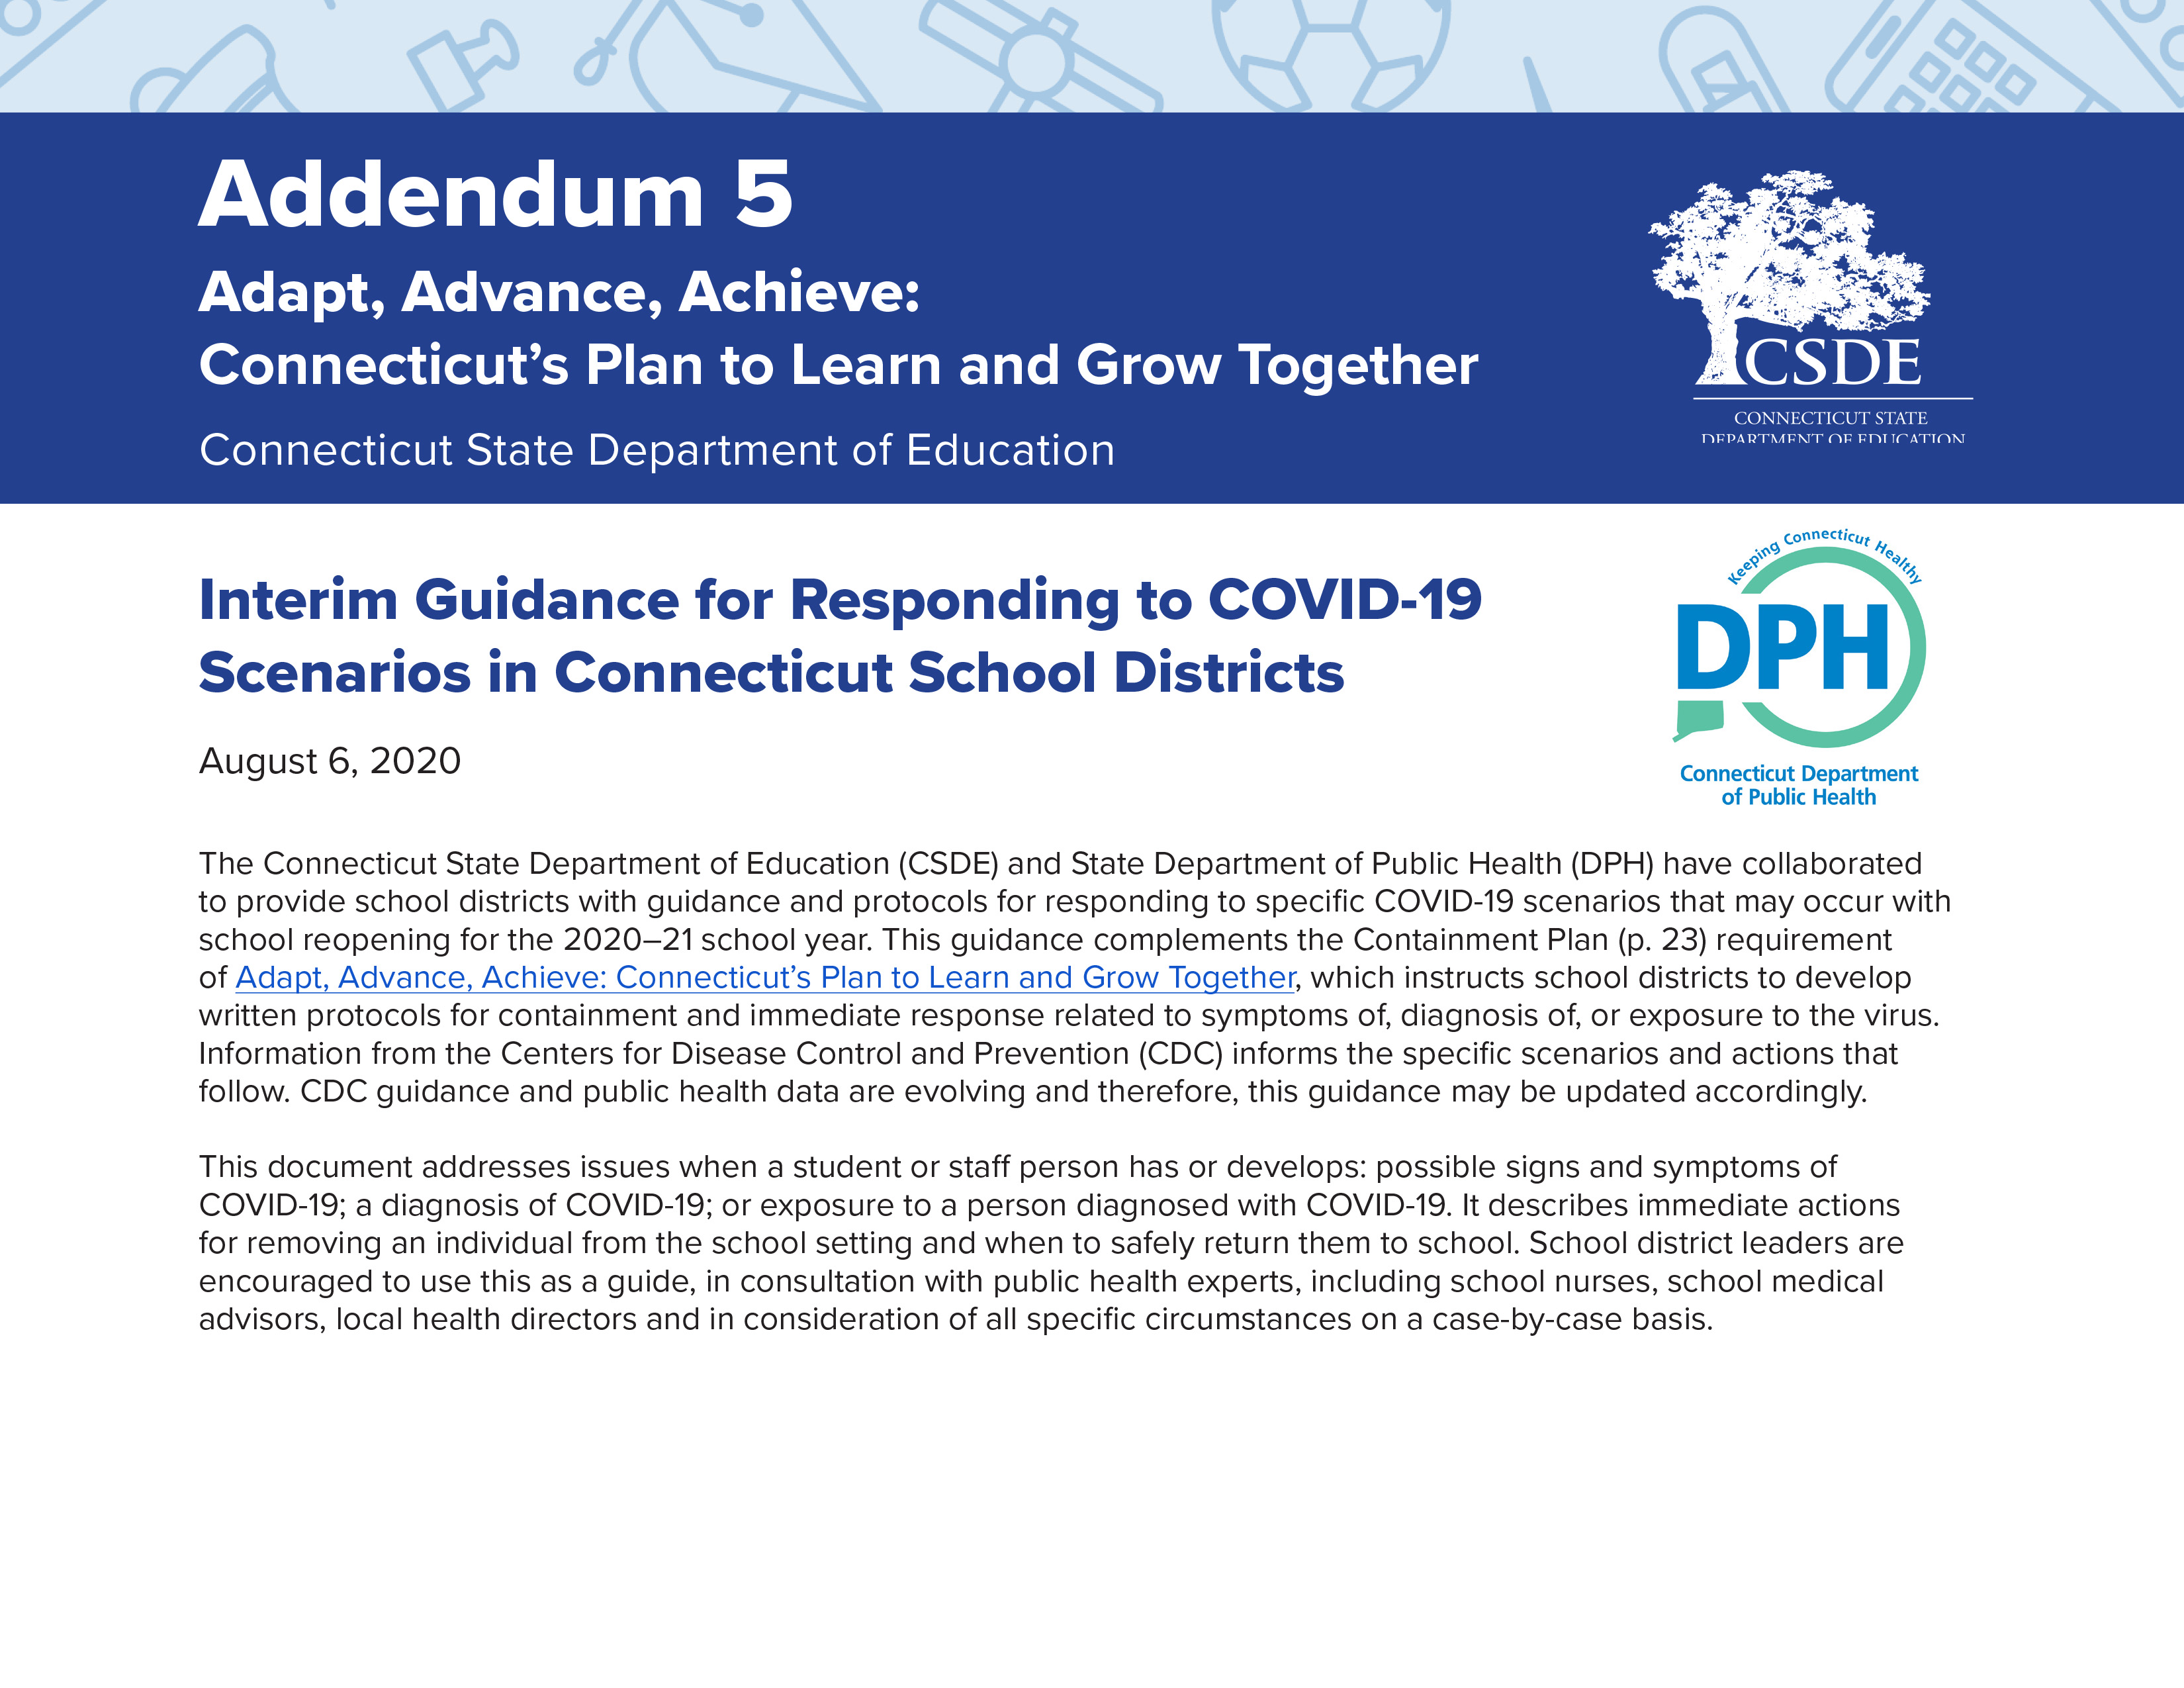 Addendum-5-Interim-Guidance-for-Responding-to-COVID-19-Scenarios-in-CT-School-Districts